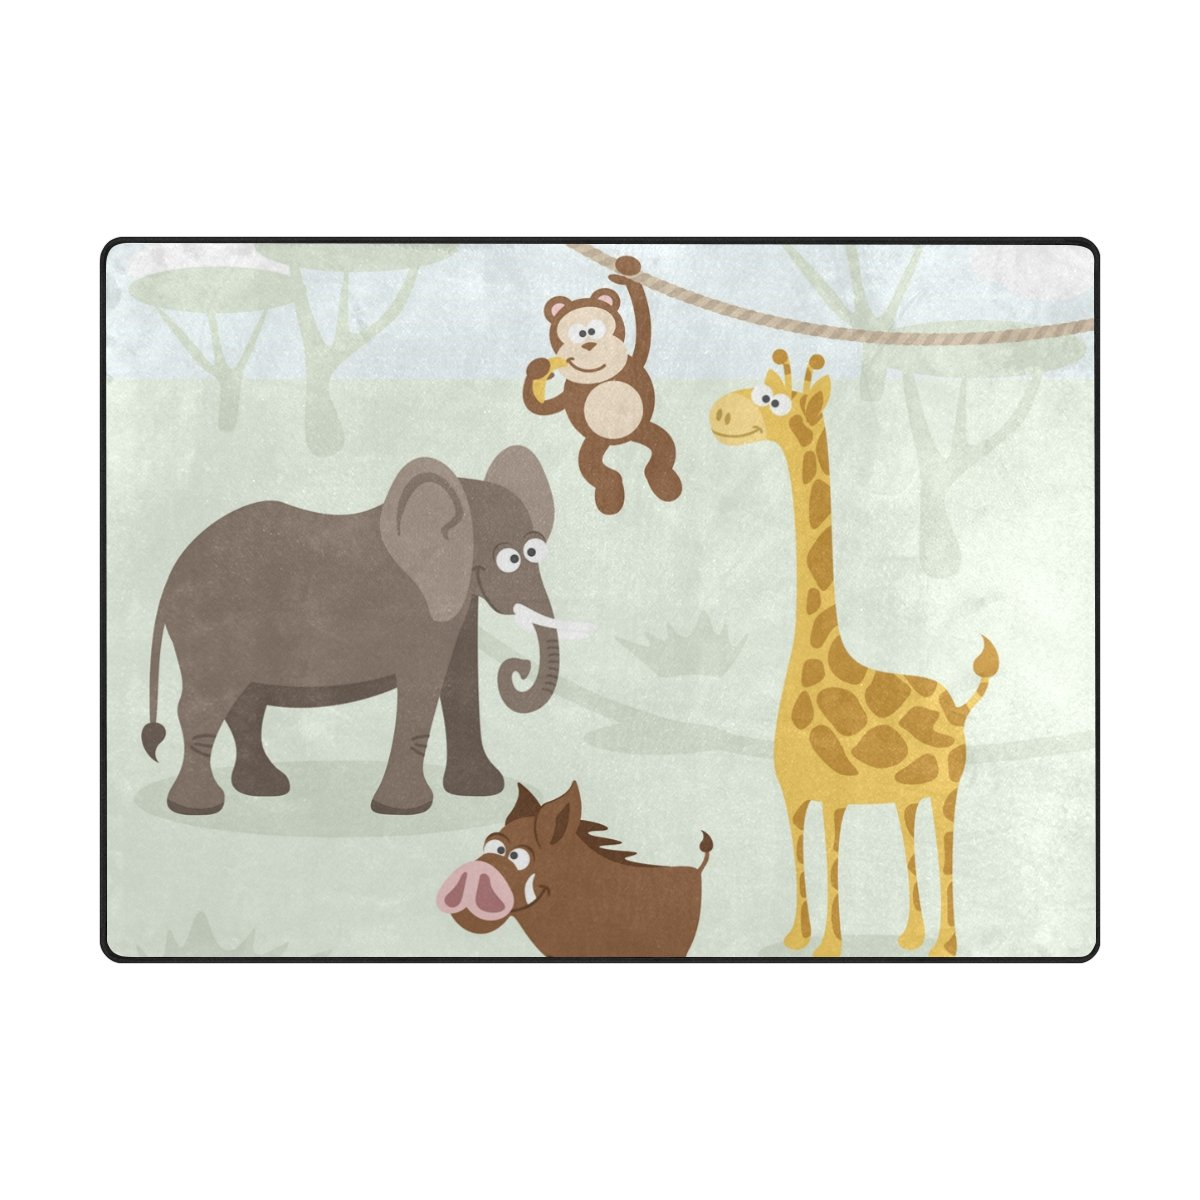 Vantaso Soft Foam Area Rugs Forest Animals Elephant Monkey Non Slip Play Mats for Kids Boys Girls Playing Room Living Room 80x58 inch